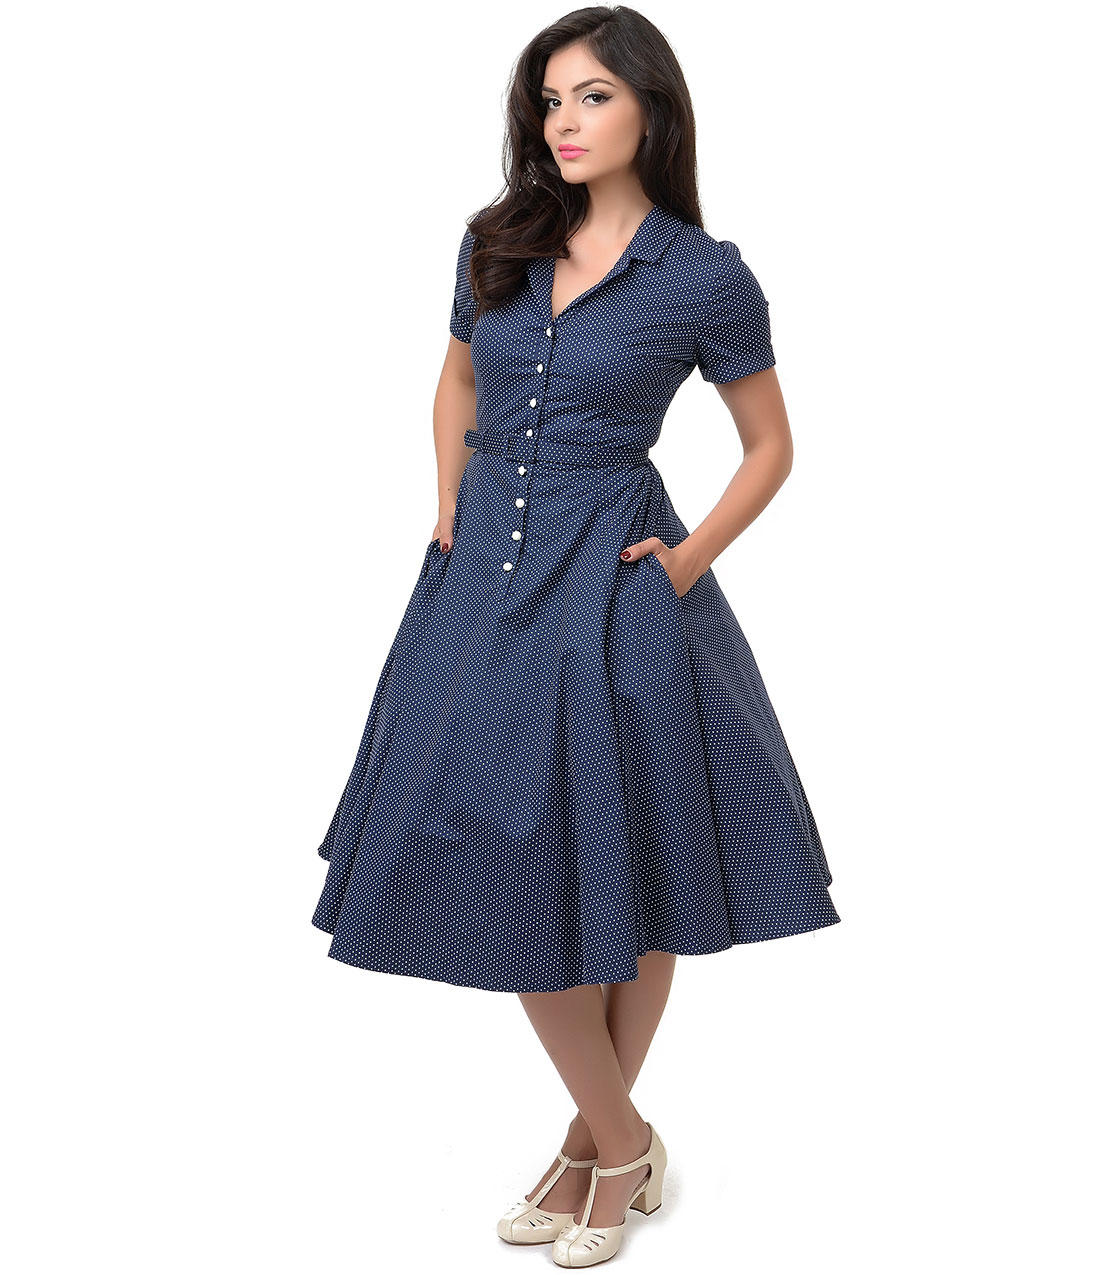 8d4cea445ed42 Collectif 1950s Style Navy & White Dot Belted Caterina Shirt Swing Dress